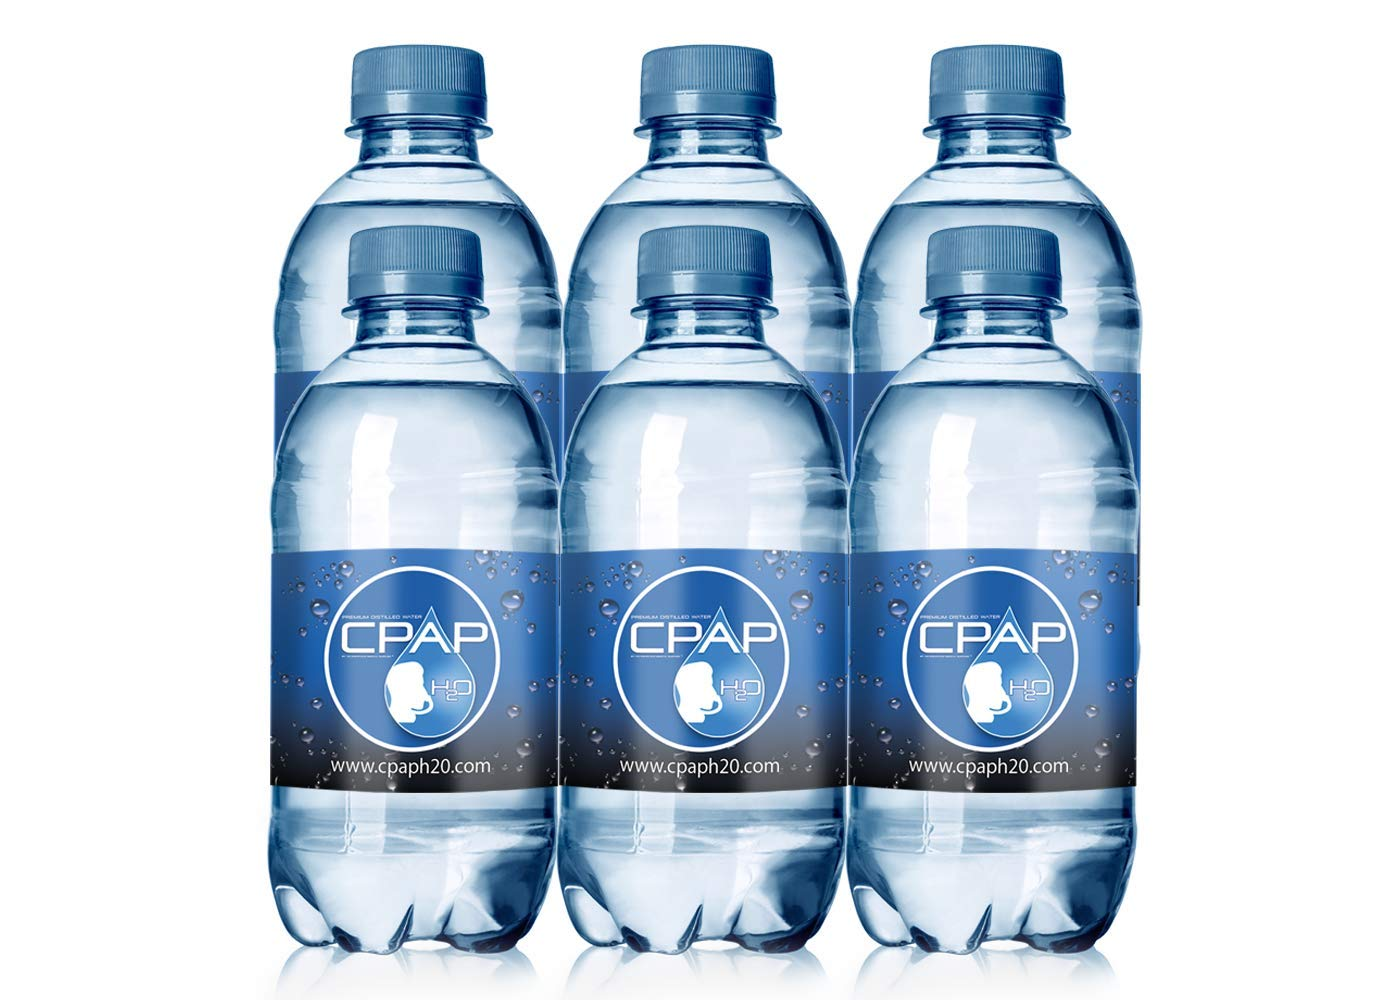 12oz CPAP H2O Premium Distilled Water (6 Bottle Pack) by CPAP H20 (Image #1)